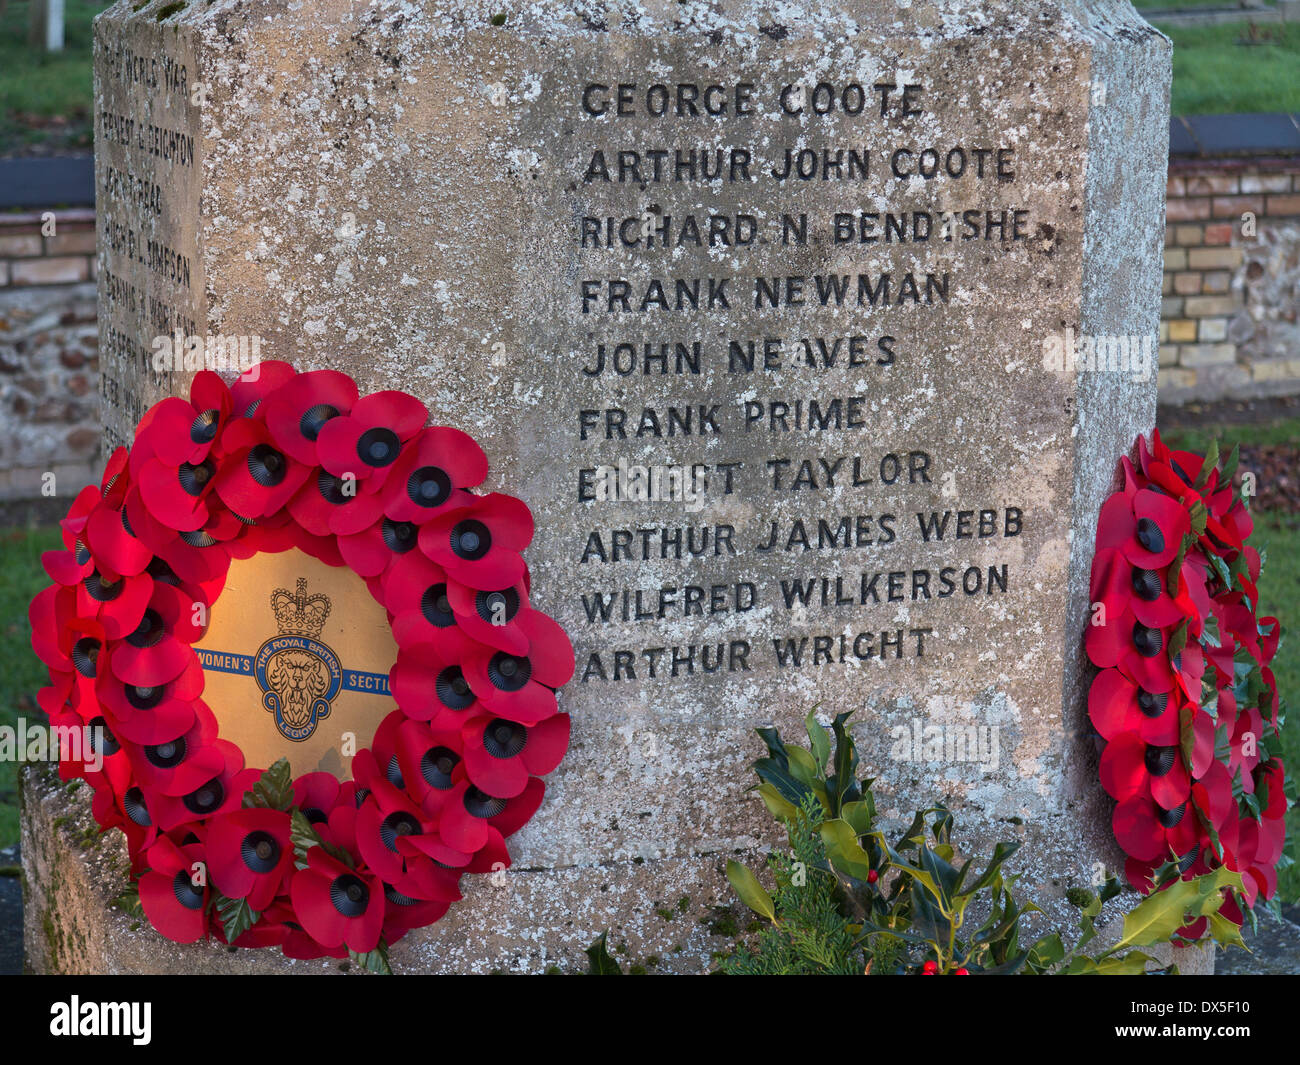 Poppy wreaths placed on war memorial to fallen First World War (World War I) soldiers by All Saints Church in Barrington, Cambridgeshire, England - Stock Image